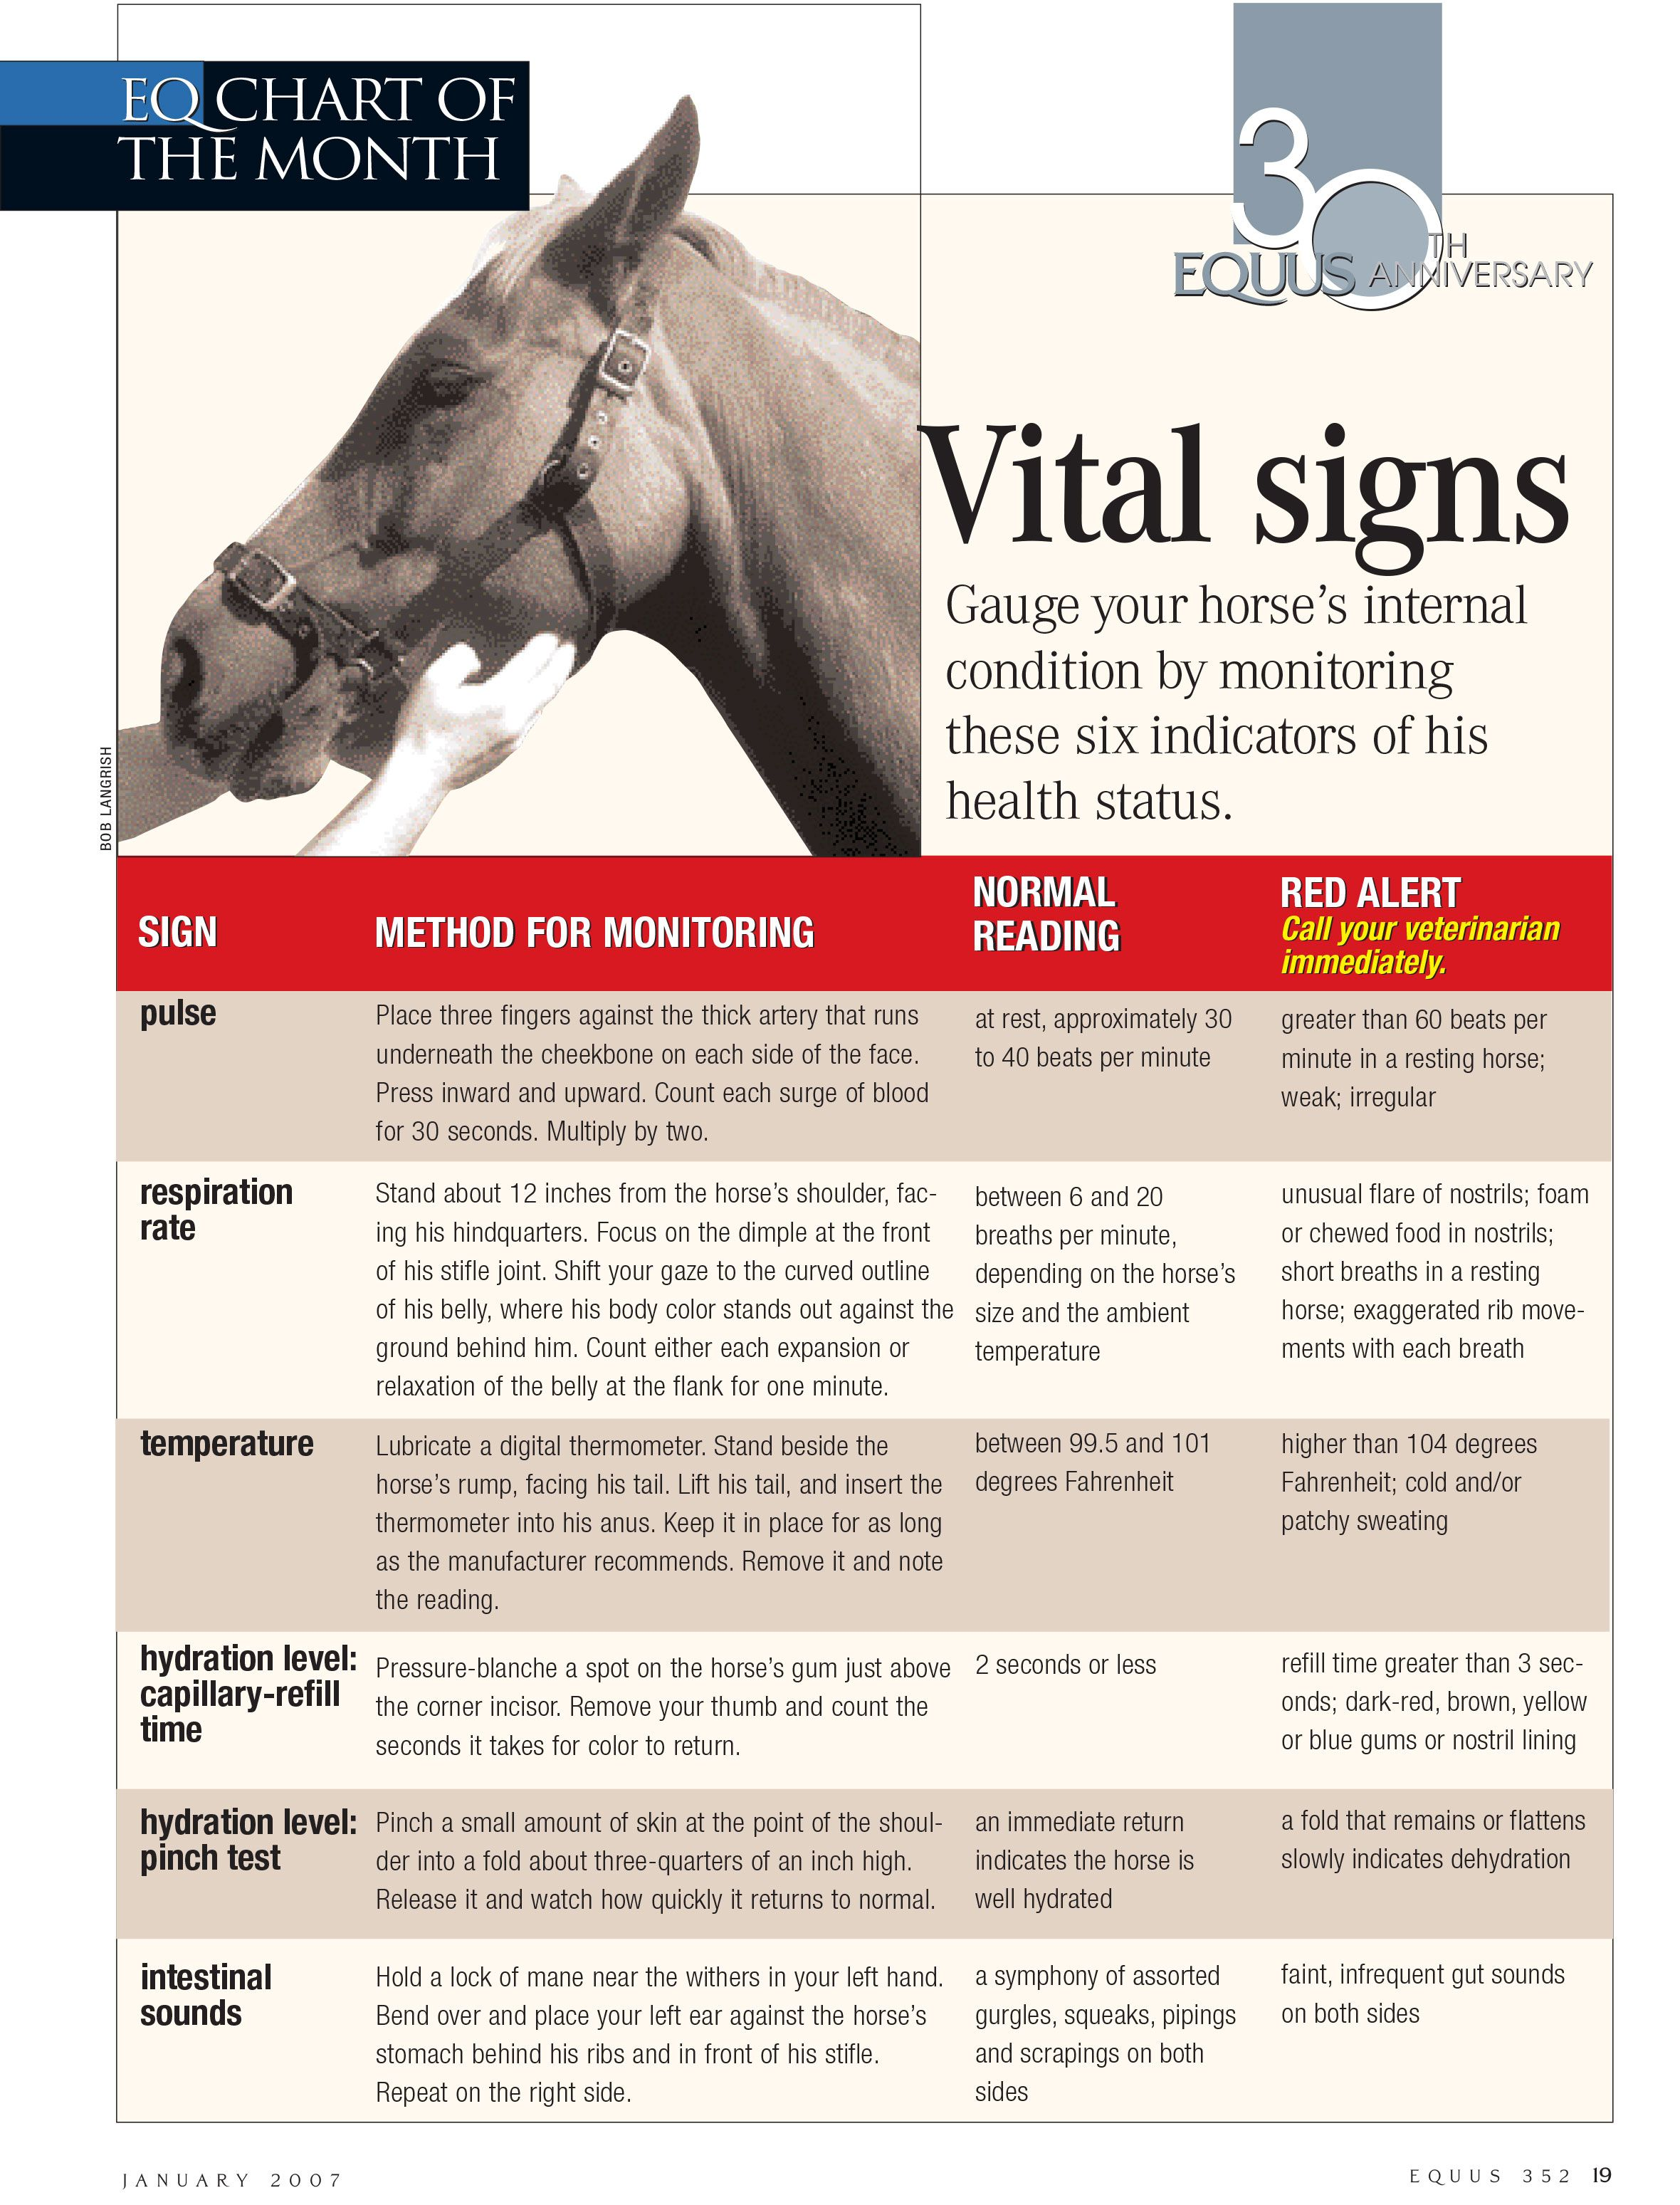 Gauge Your Horse S Internal Condition With The Help Of